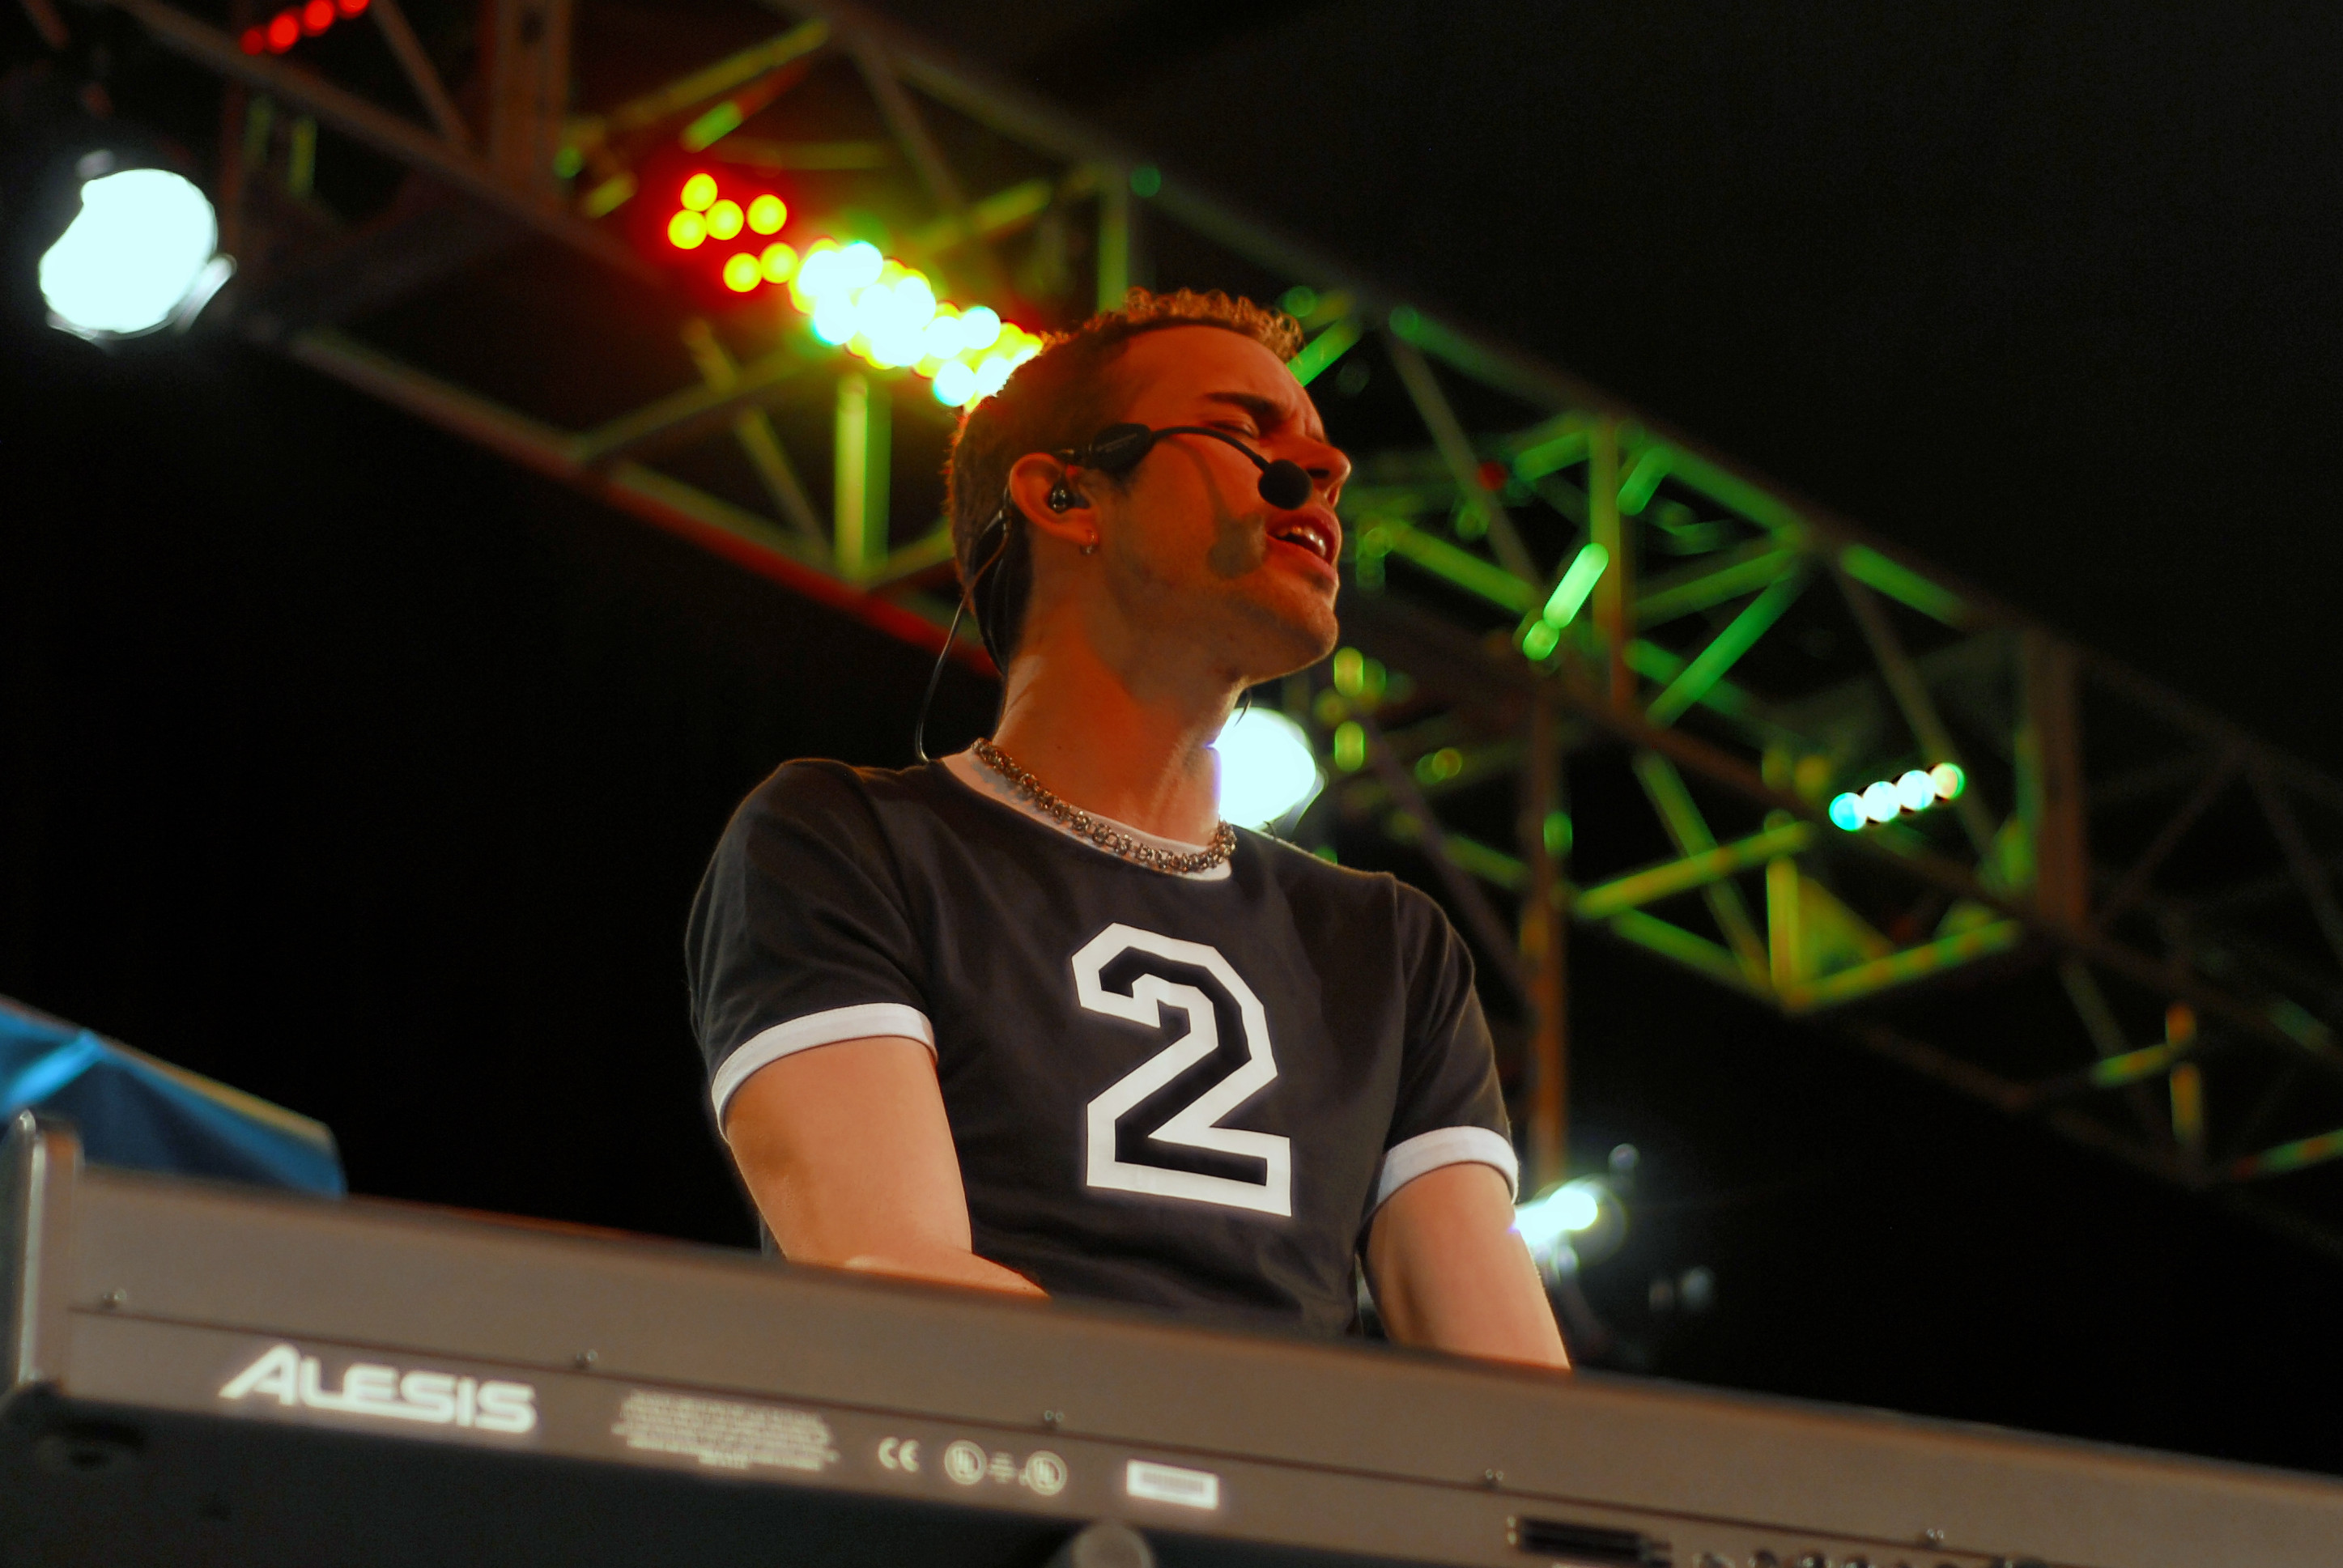 On Stage at FC 2013